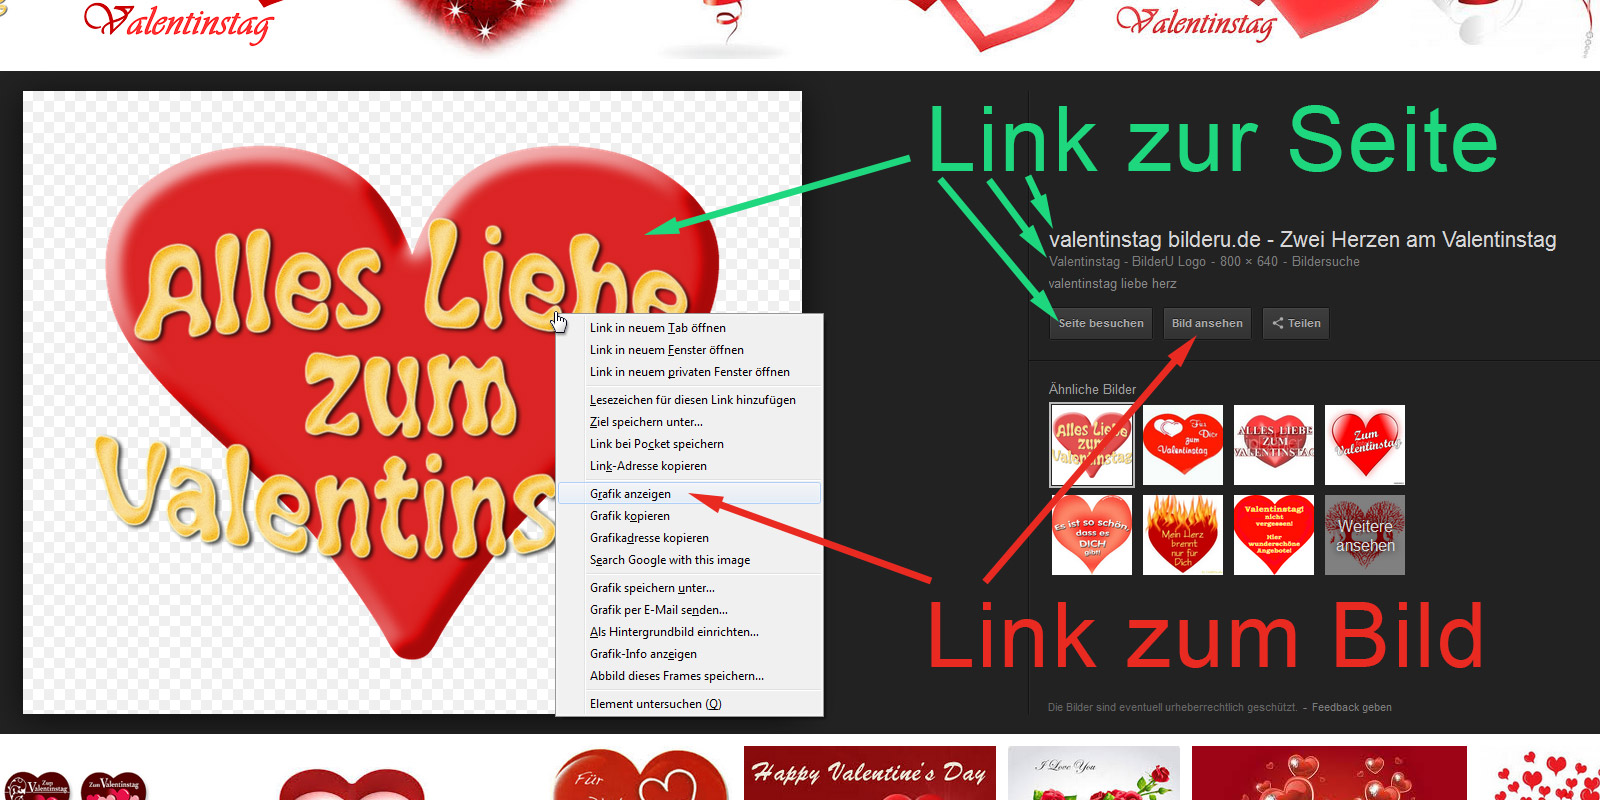 Google-Bildersuche: Links